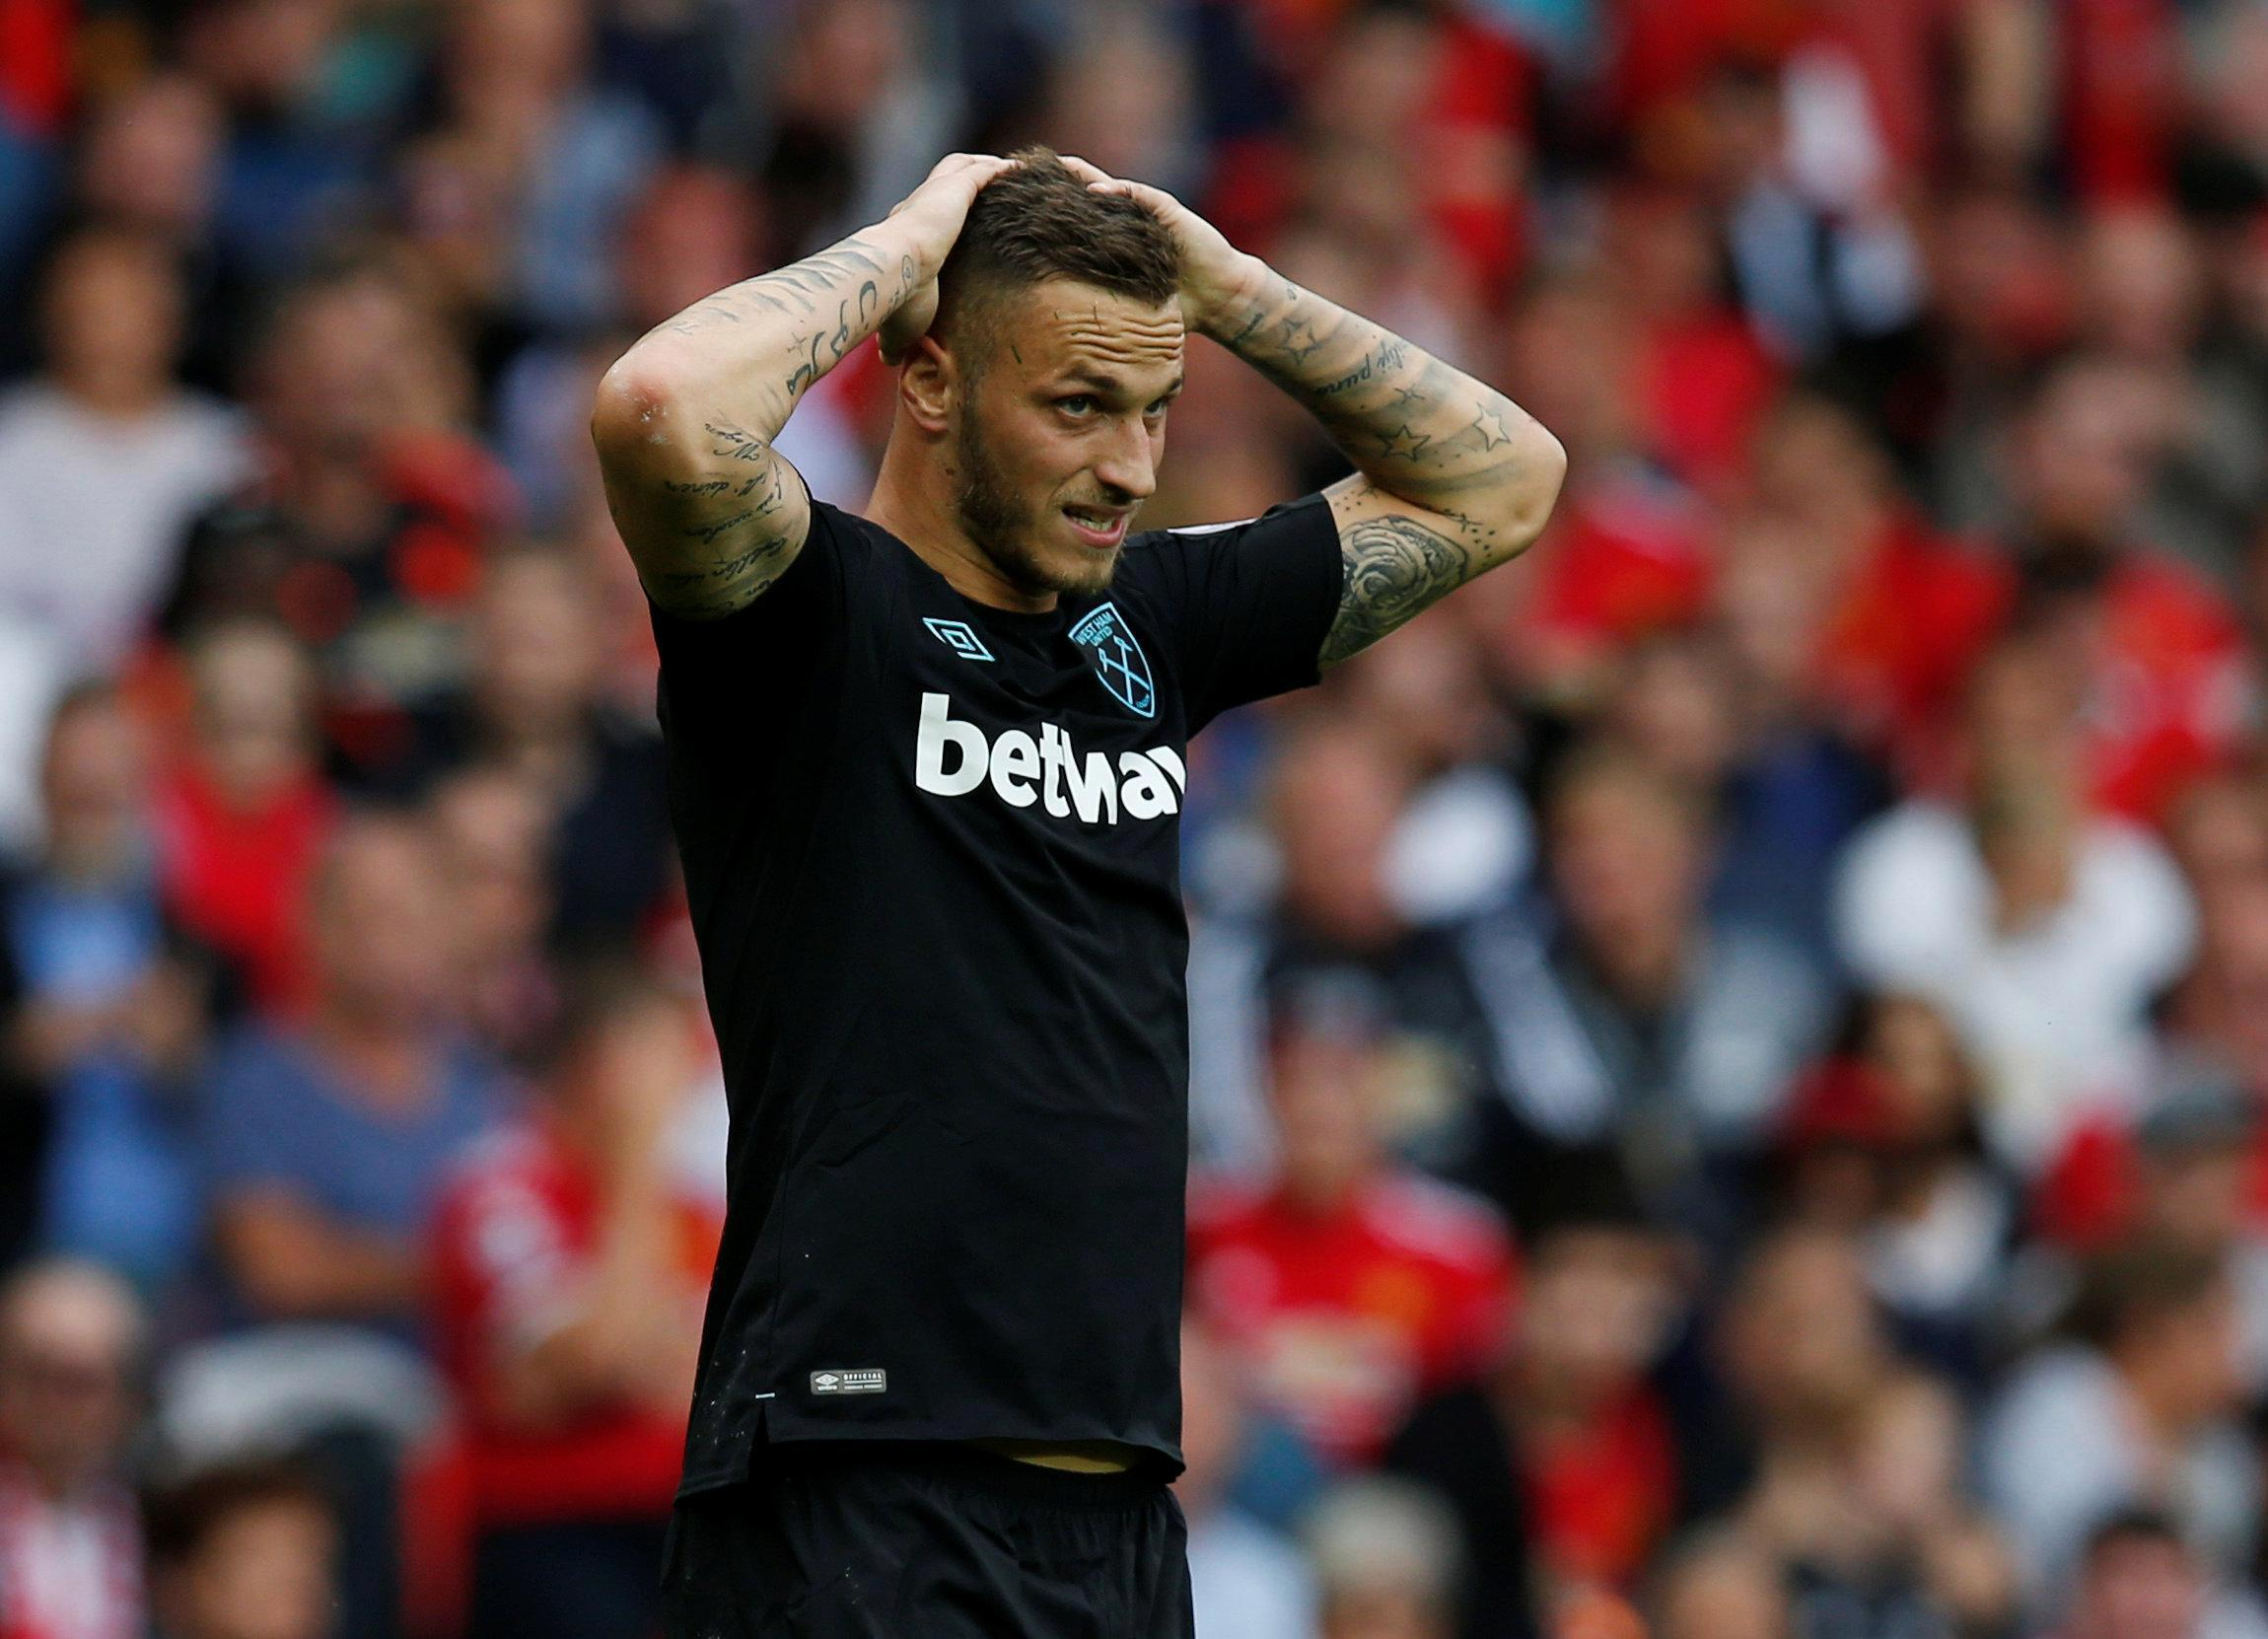 Arnautovic was pretty damning about Stoke when he left